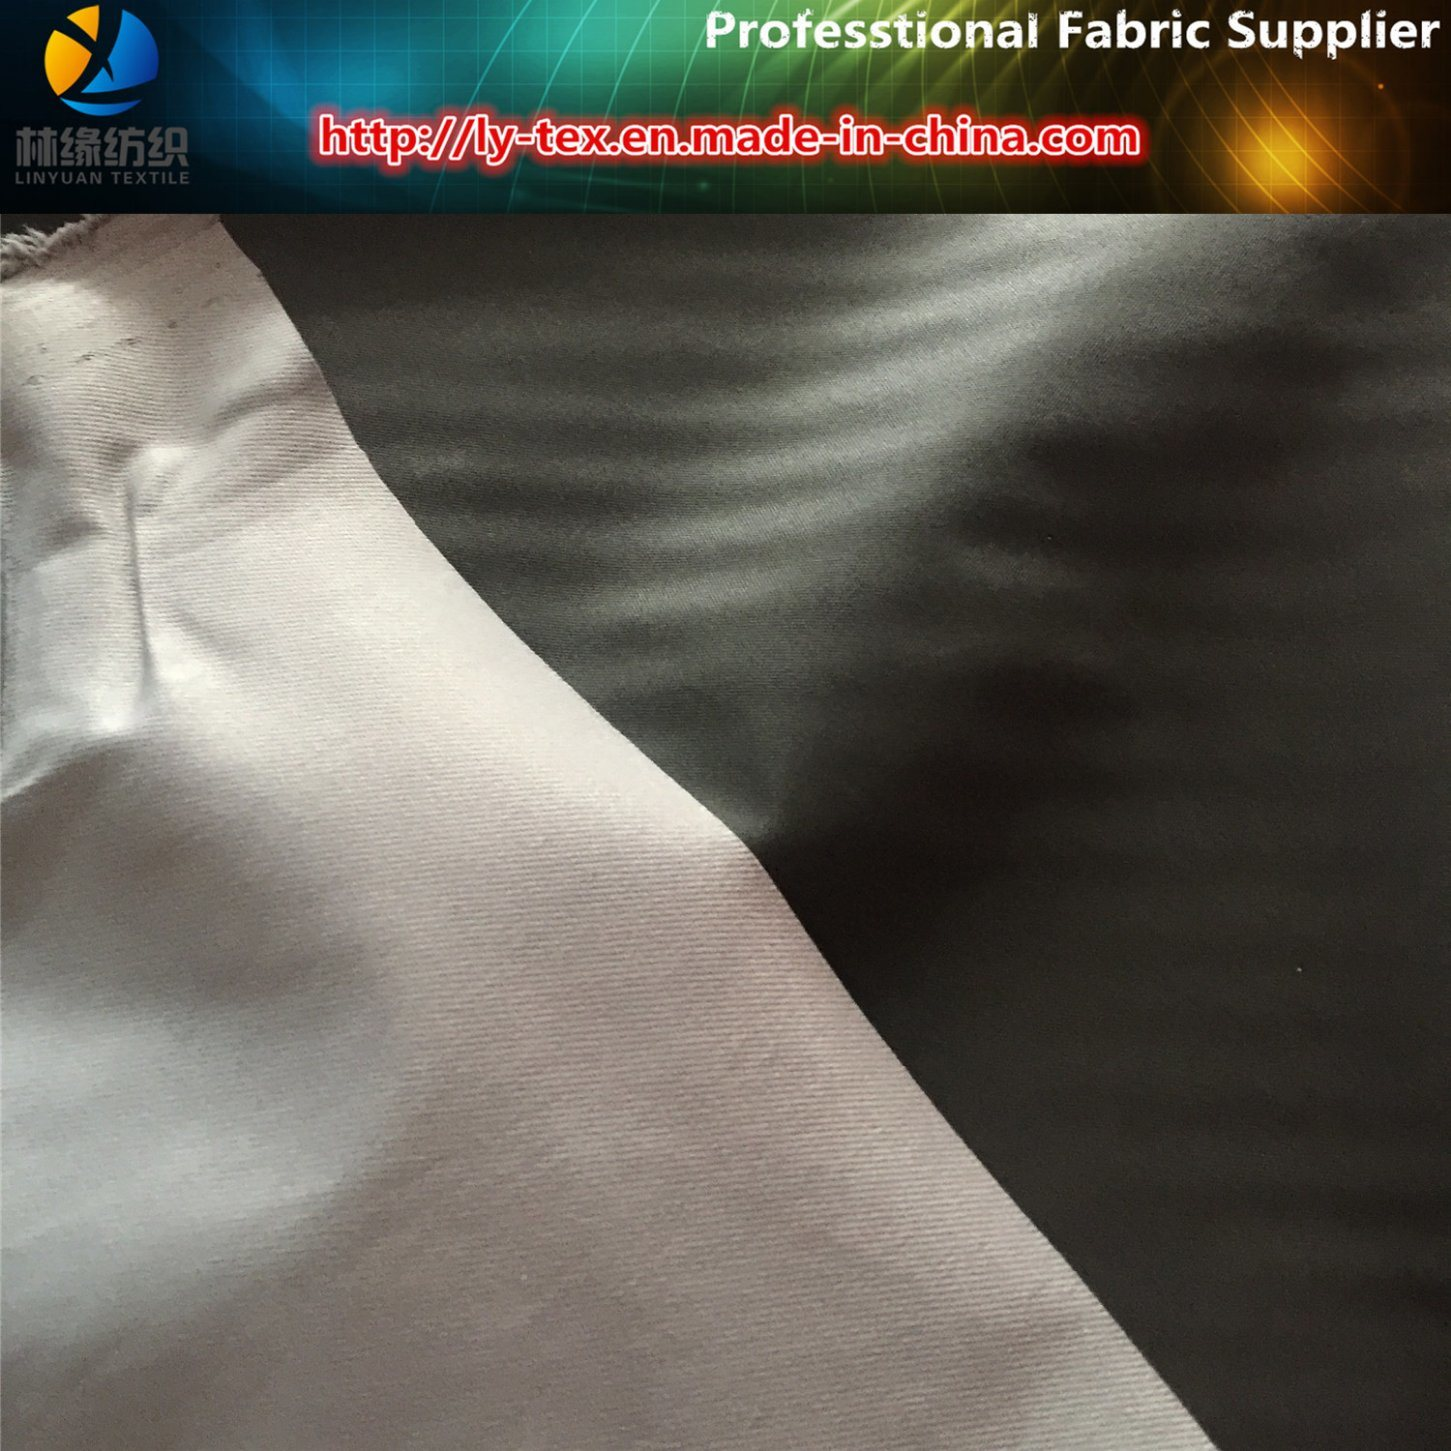 New Polyester Twill Check Printed PU Coated Fabric for Men Garment, Polyester Fabric Supplier